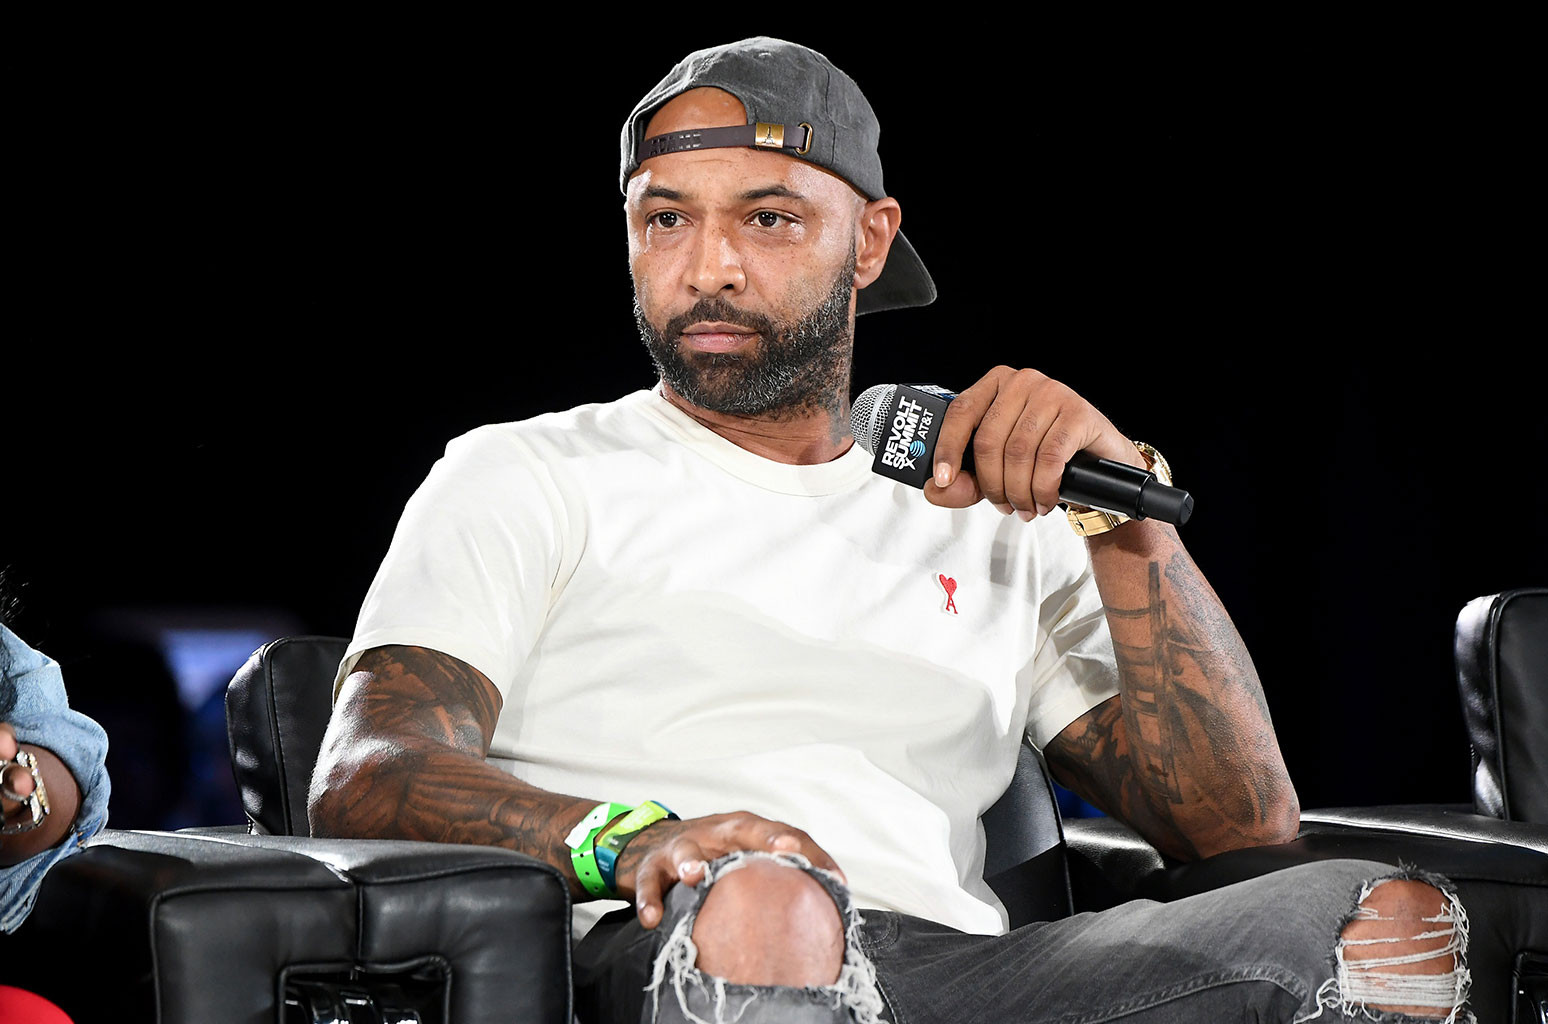 Joe Budden Brings Podcast to Patreon, Joins Company as Head of Creator Equity